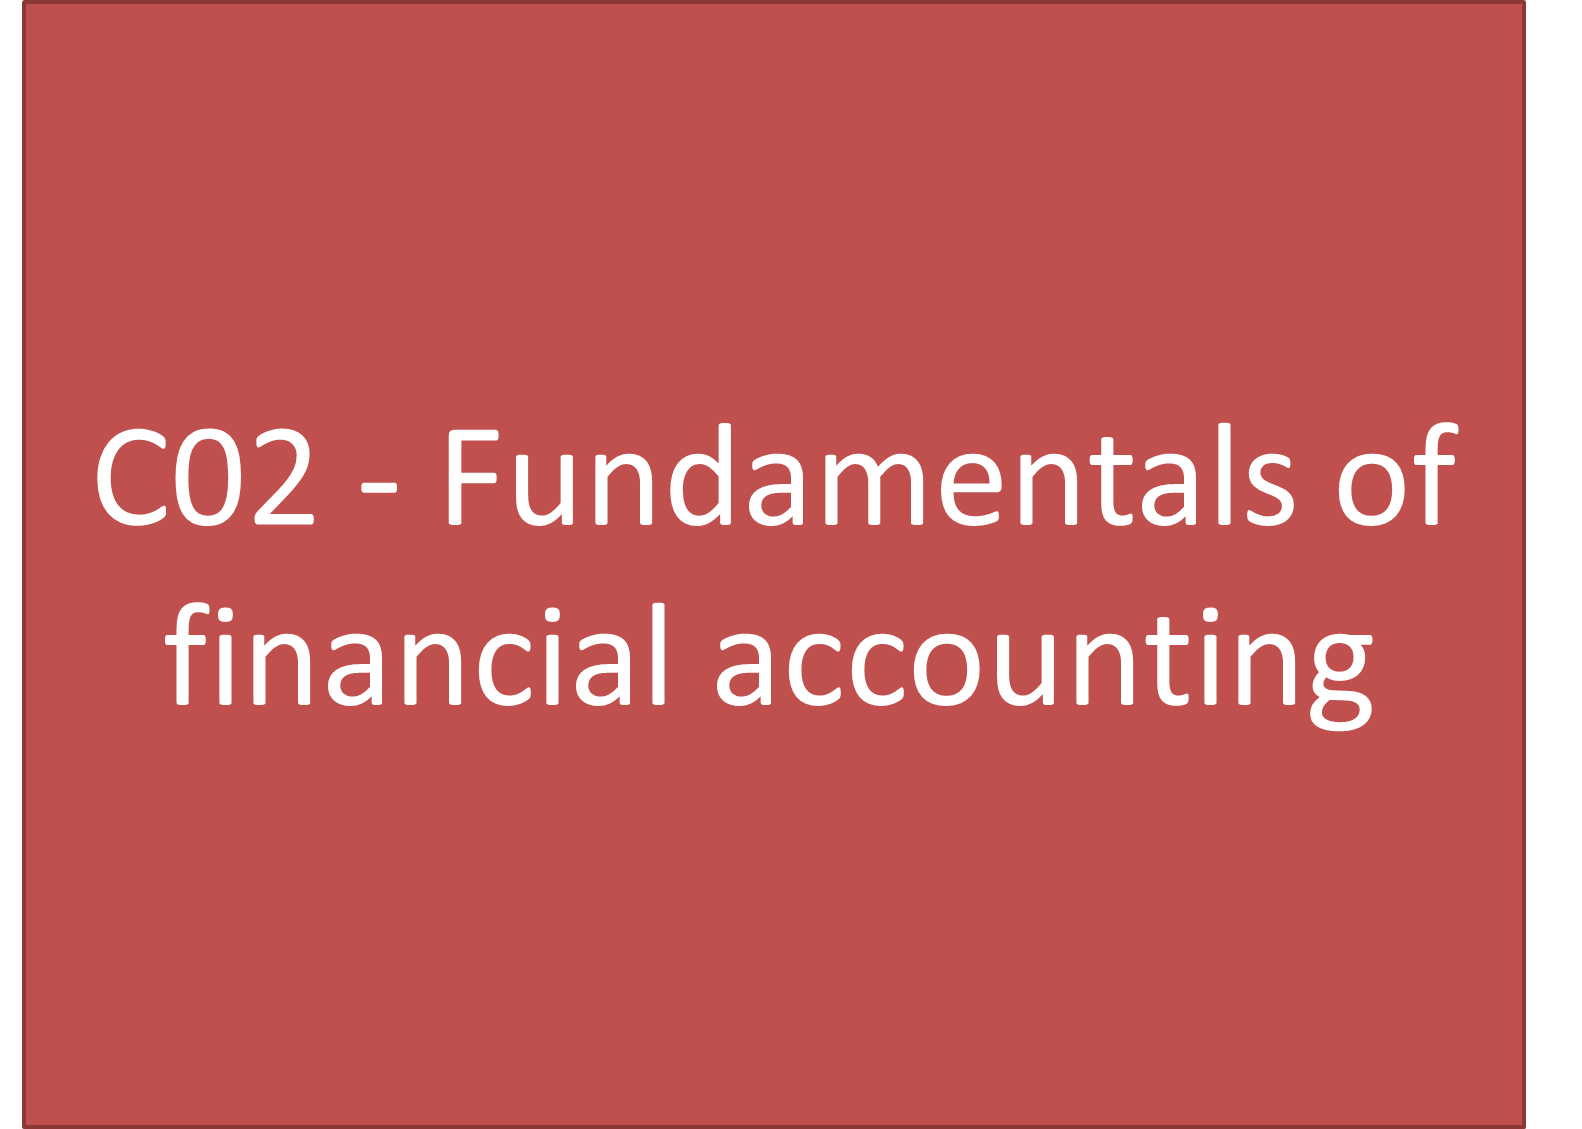 fundamentals of financial reporting About this course: this course will teach you the tools you'll need to understand the fundamentals of financial accounting concise videos, the financial records of a small business, and your turn activities guide you through the three most commonly used financial statements: the balance sheet.